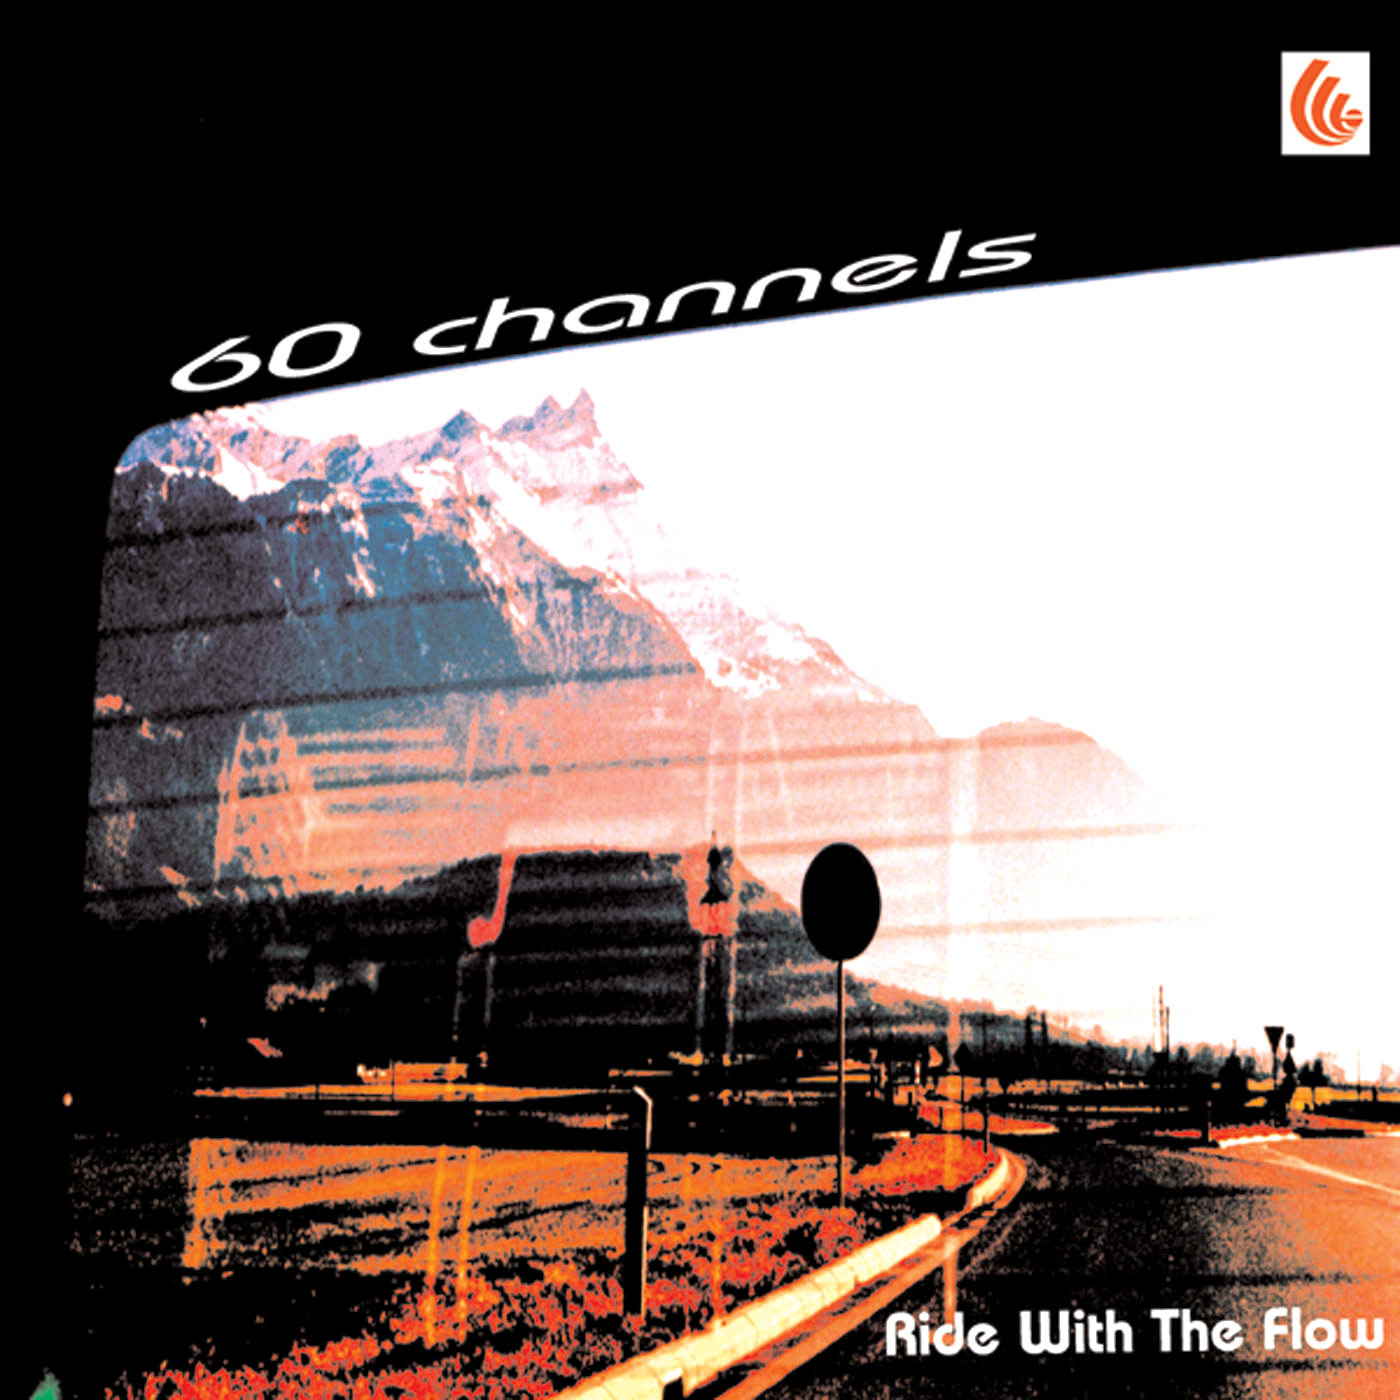 60 Channels - Ride With the Flow - single